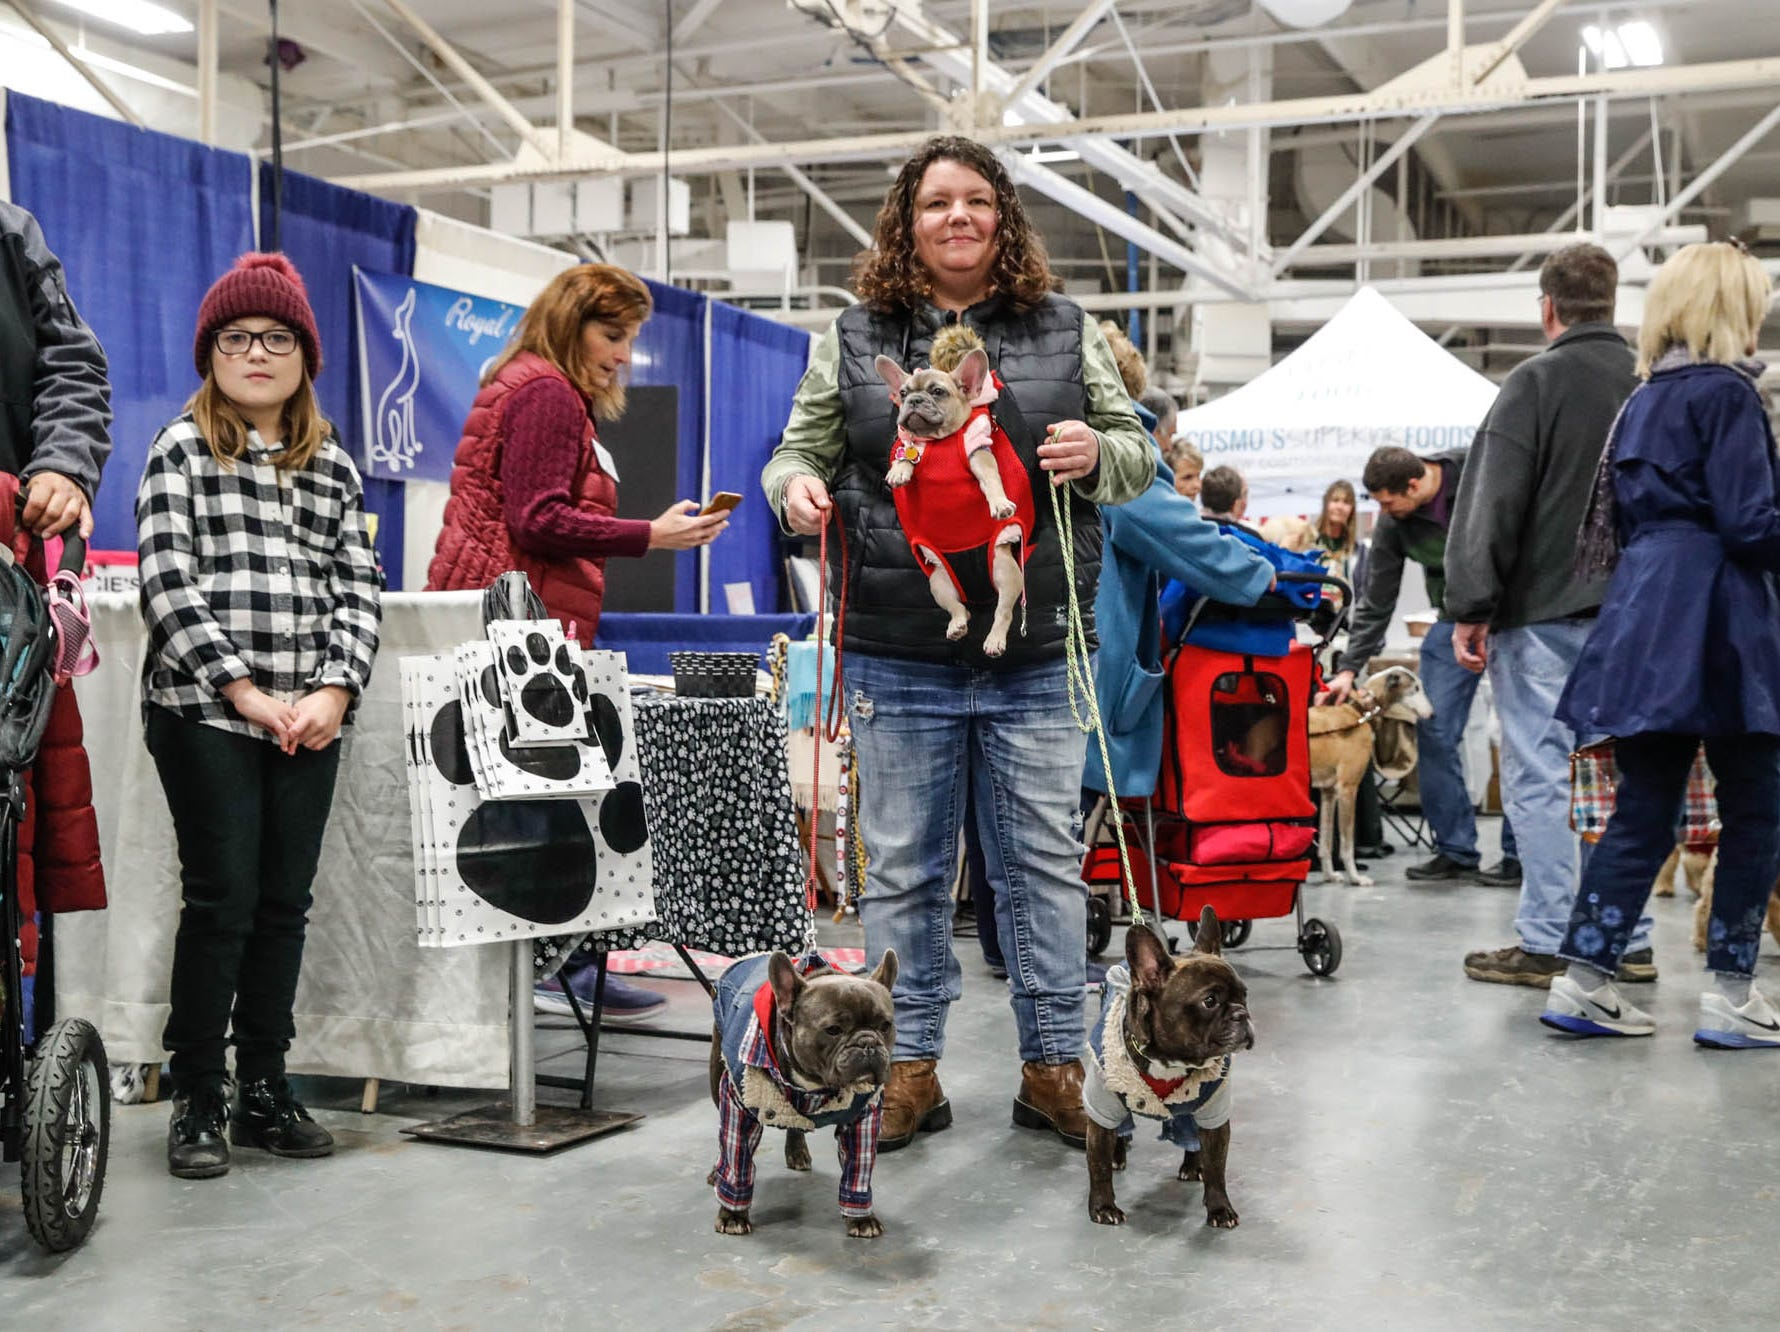 Andy Ronan brings her dogs lLilly, Milo, and Oliver to the Great Indy Pet Expo, held at the Indiana State Fairgrounds on Sat. Nov. 10, 2018.